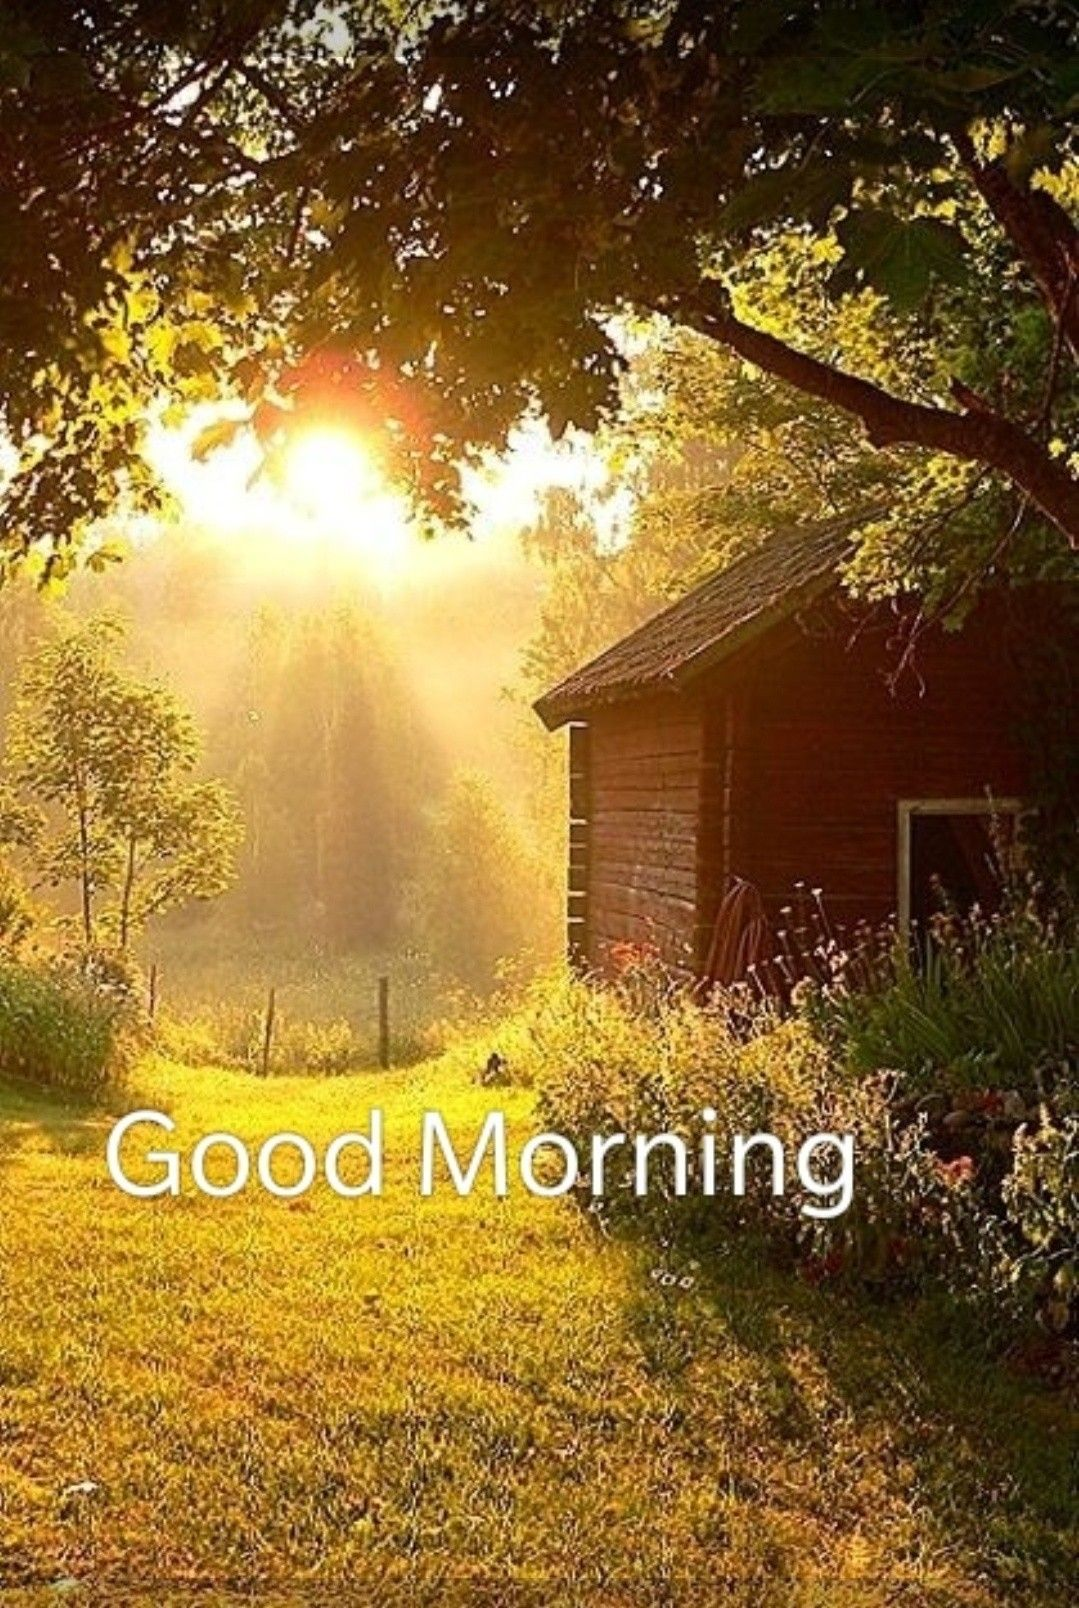 Good Morning Baby Can T Wait To See You Today Feels Like It Has Been Forever I M Good Morning Beautiful Images Good Morning Love Good Morning Quotes